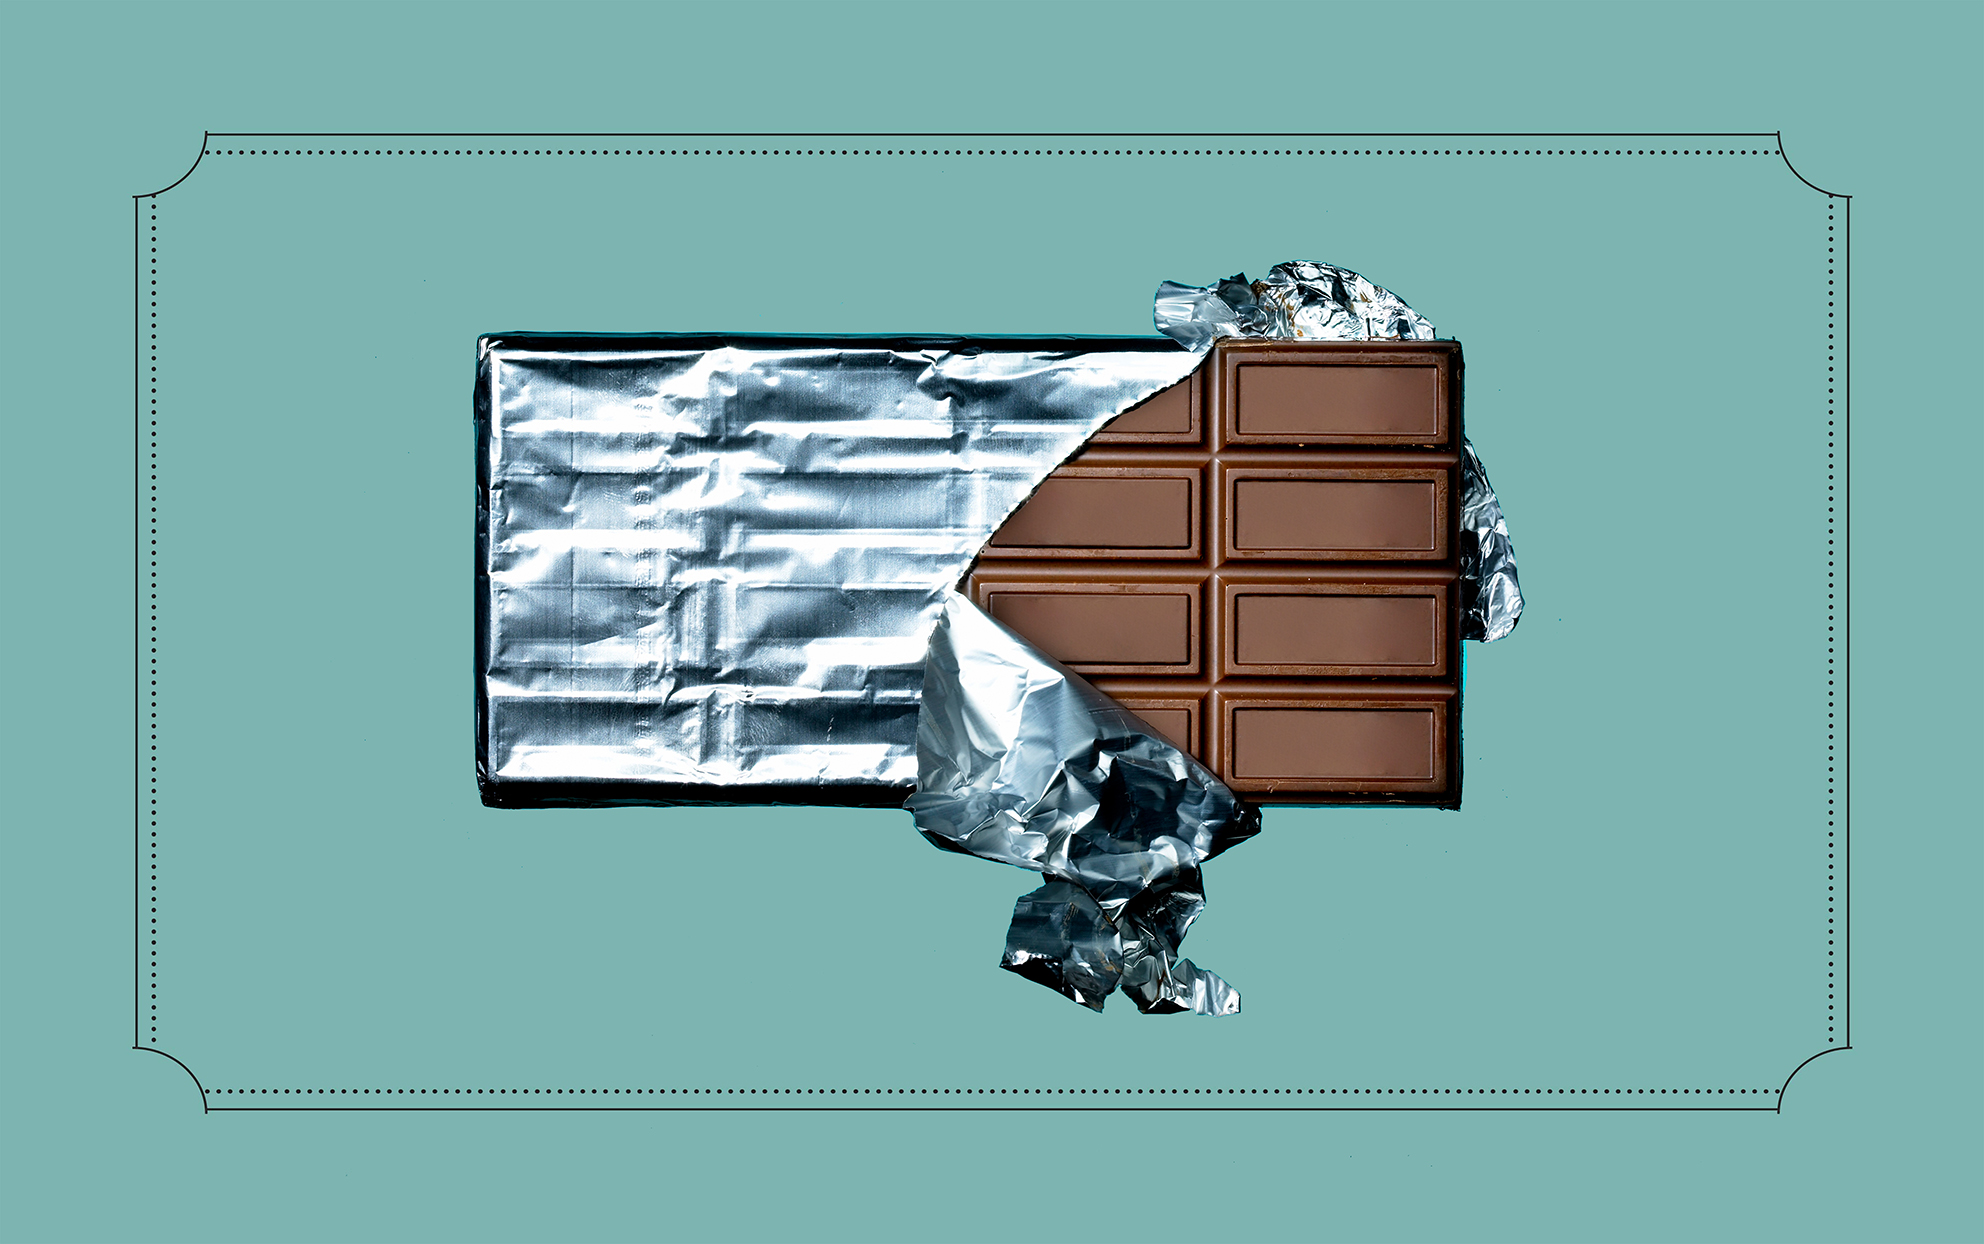 Hershey's milk chocolate bar foil wrapper being unwrapped to see blank squares of chocolate.